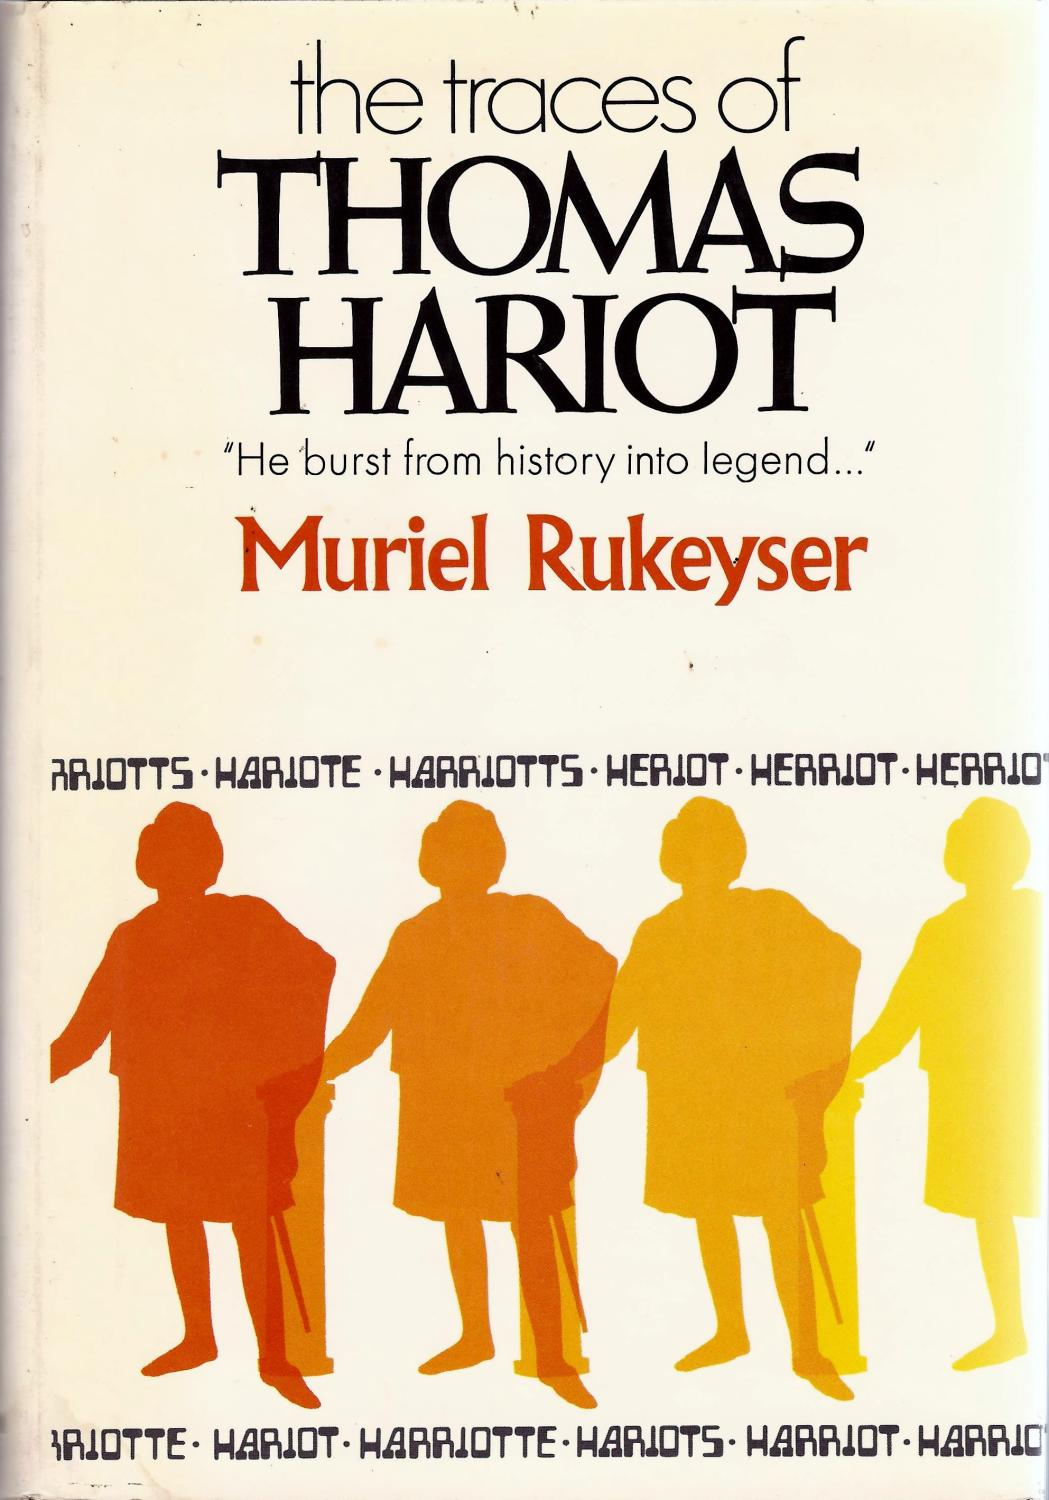 The Traces Of Thomas Hariot by Muriel Rukeyser